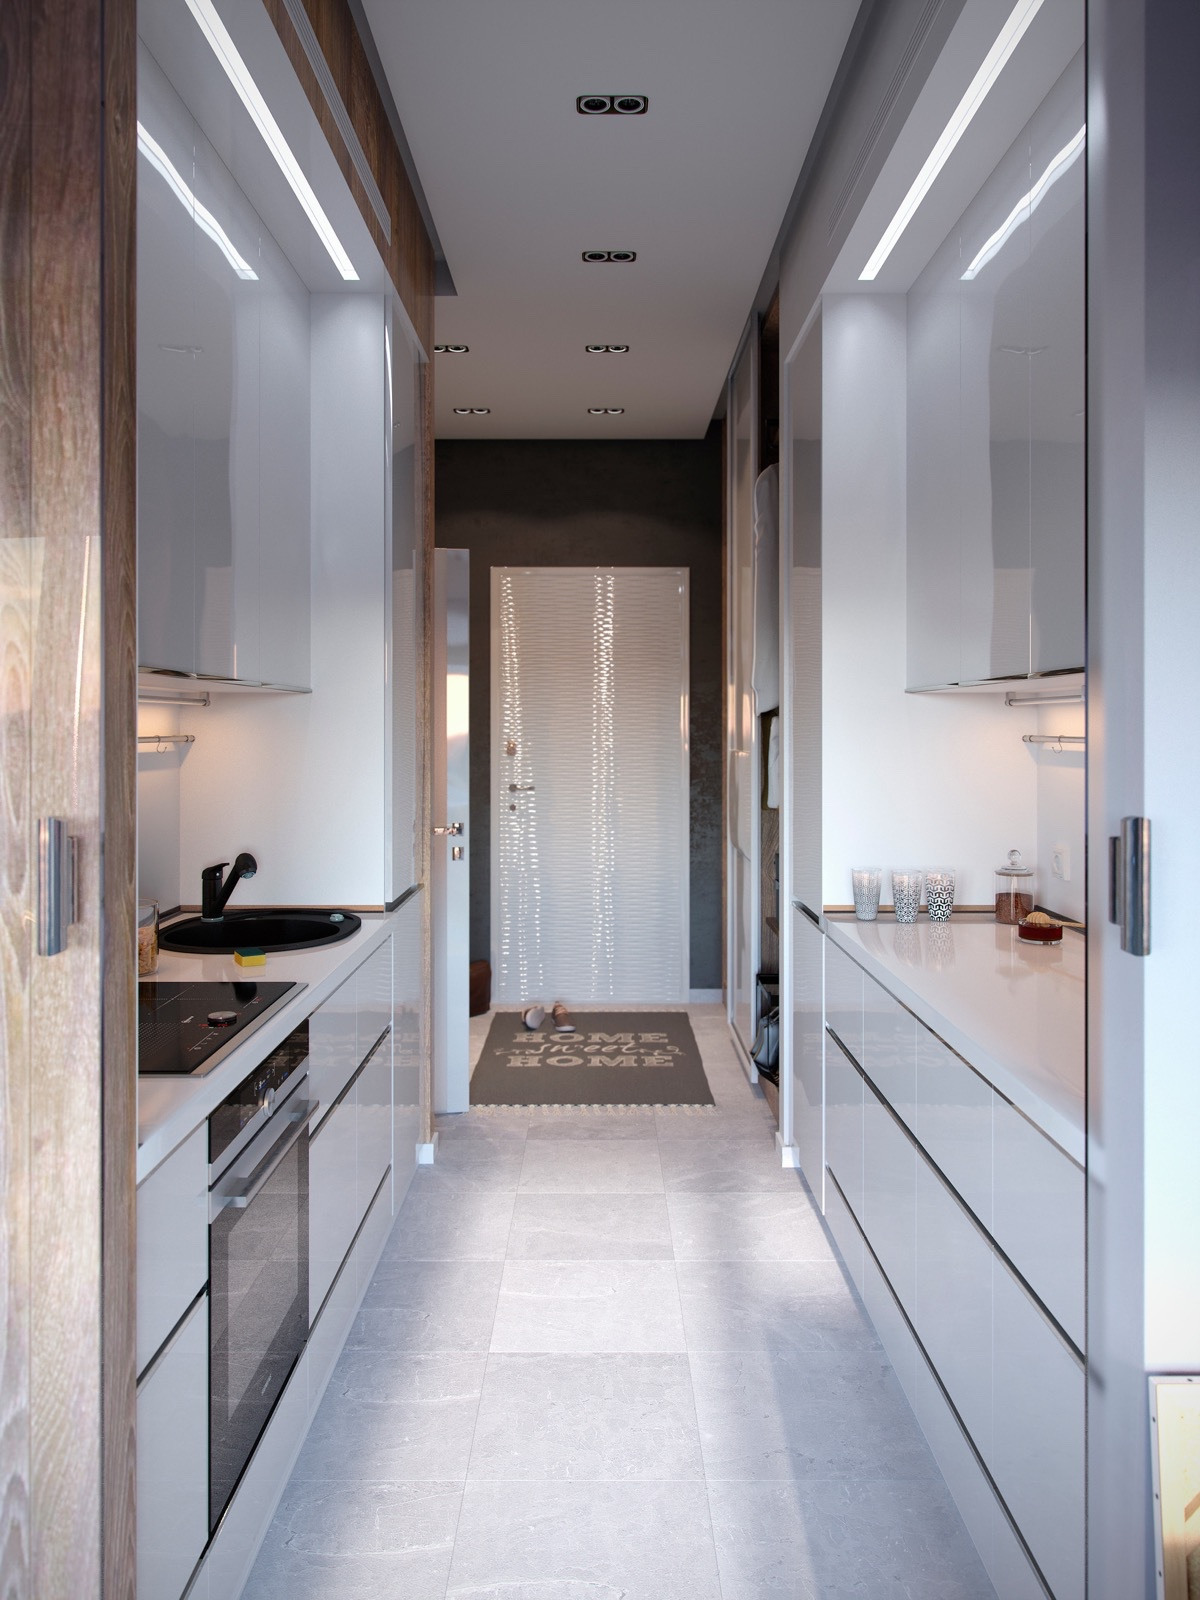 Small Spaces 3 Homes Under 50 Square Meters Under Construction Studio